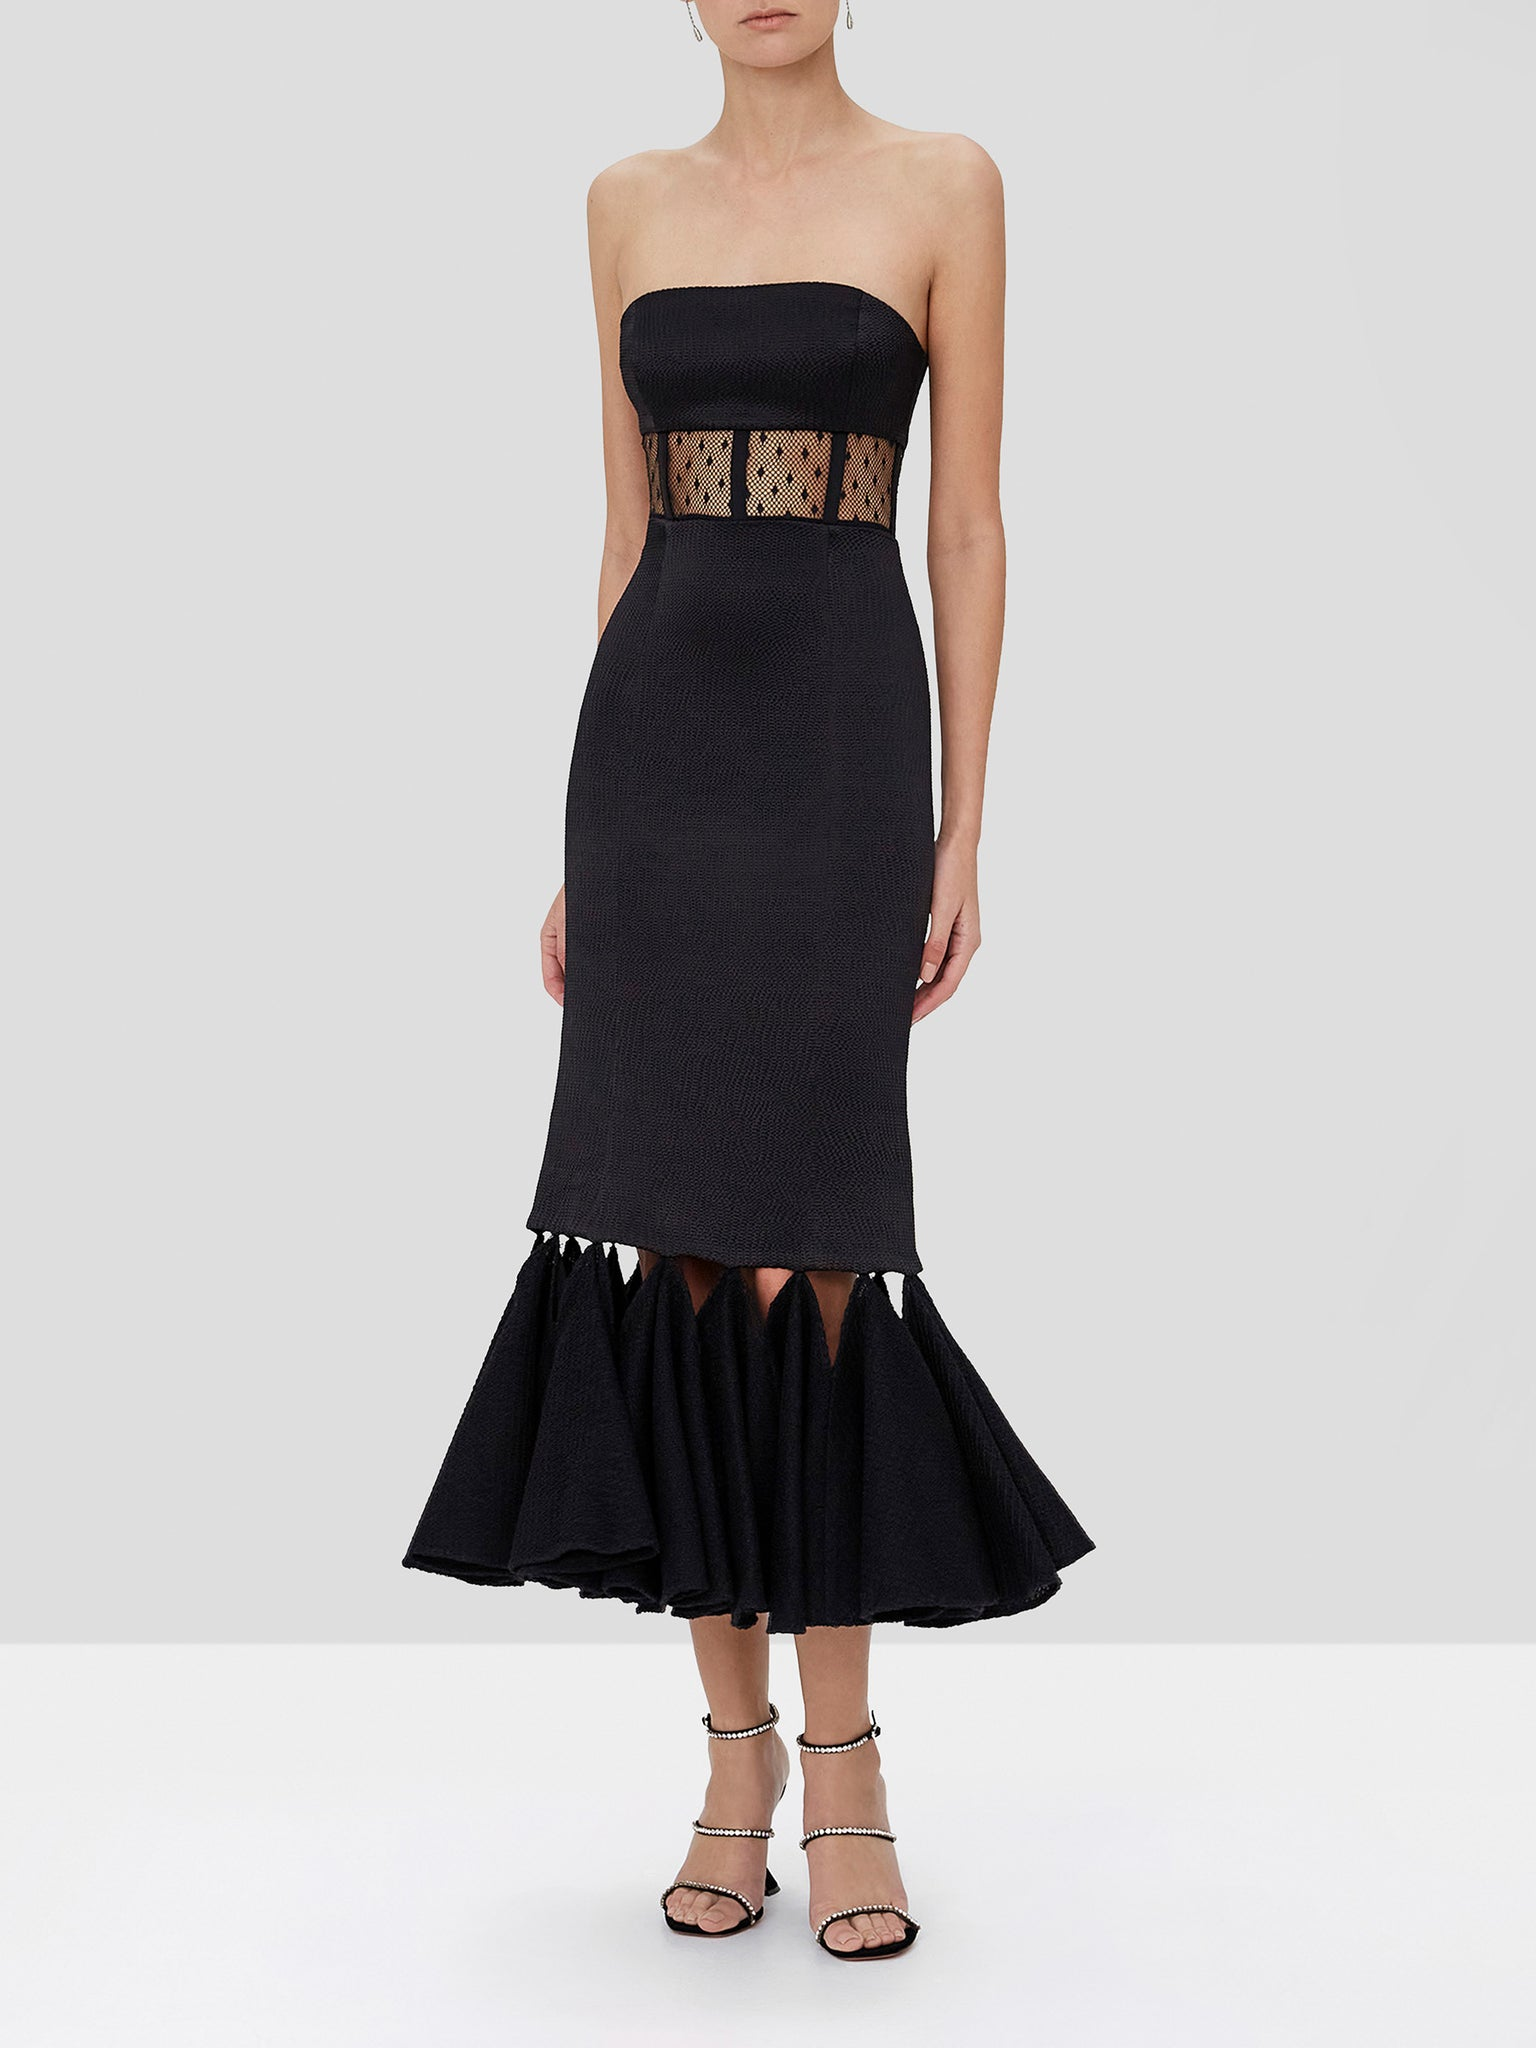 verbena dress in black